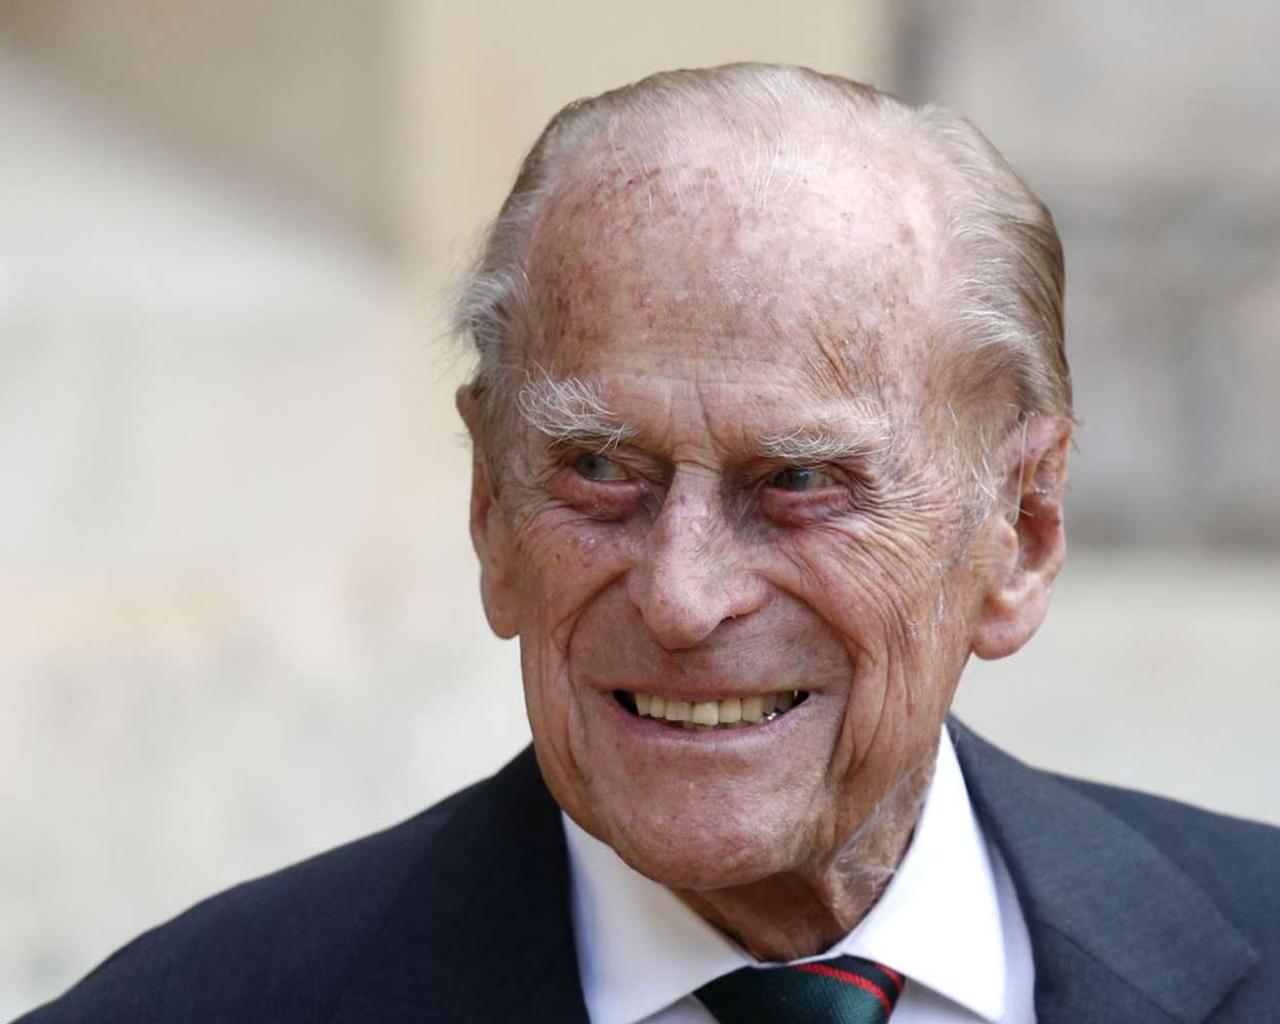 As Prince Philip dies at the age of 99, donations are sent by Queen Elizabeth II's husband